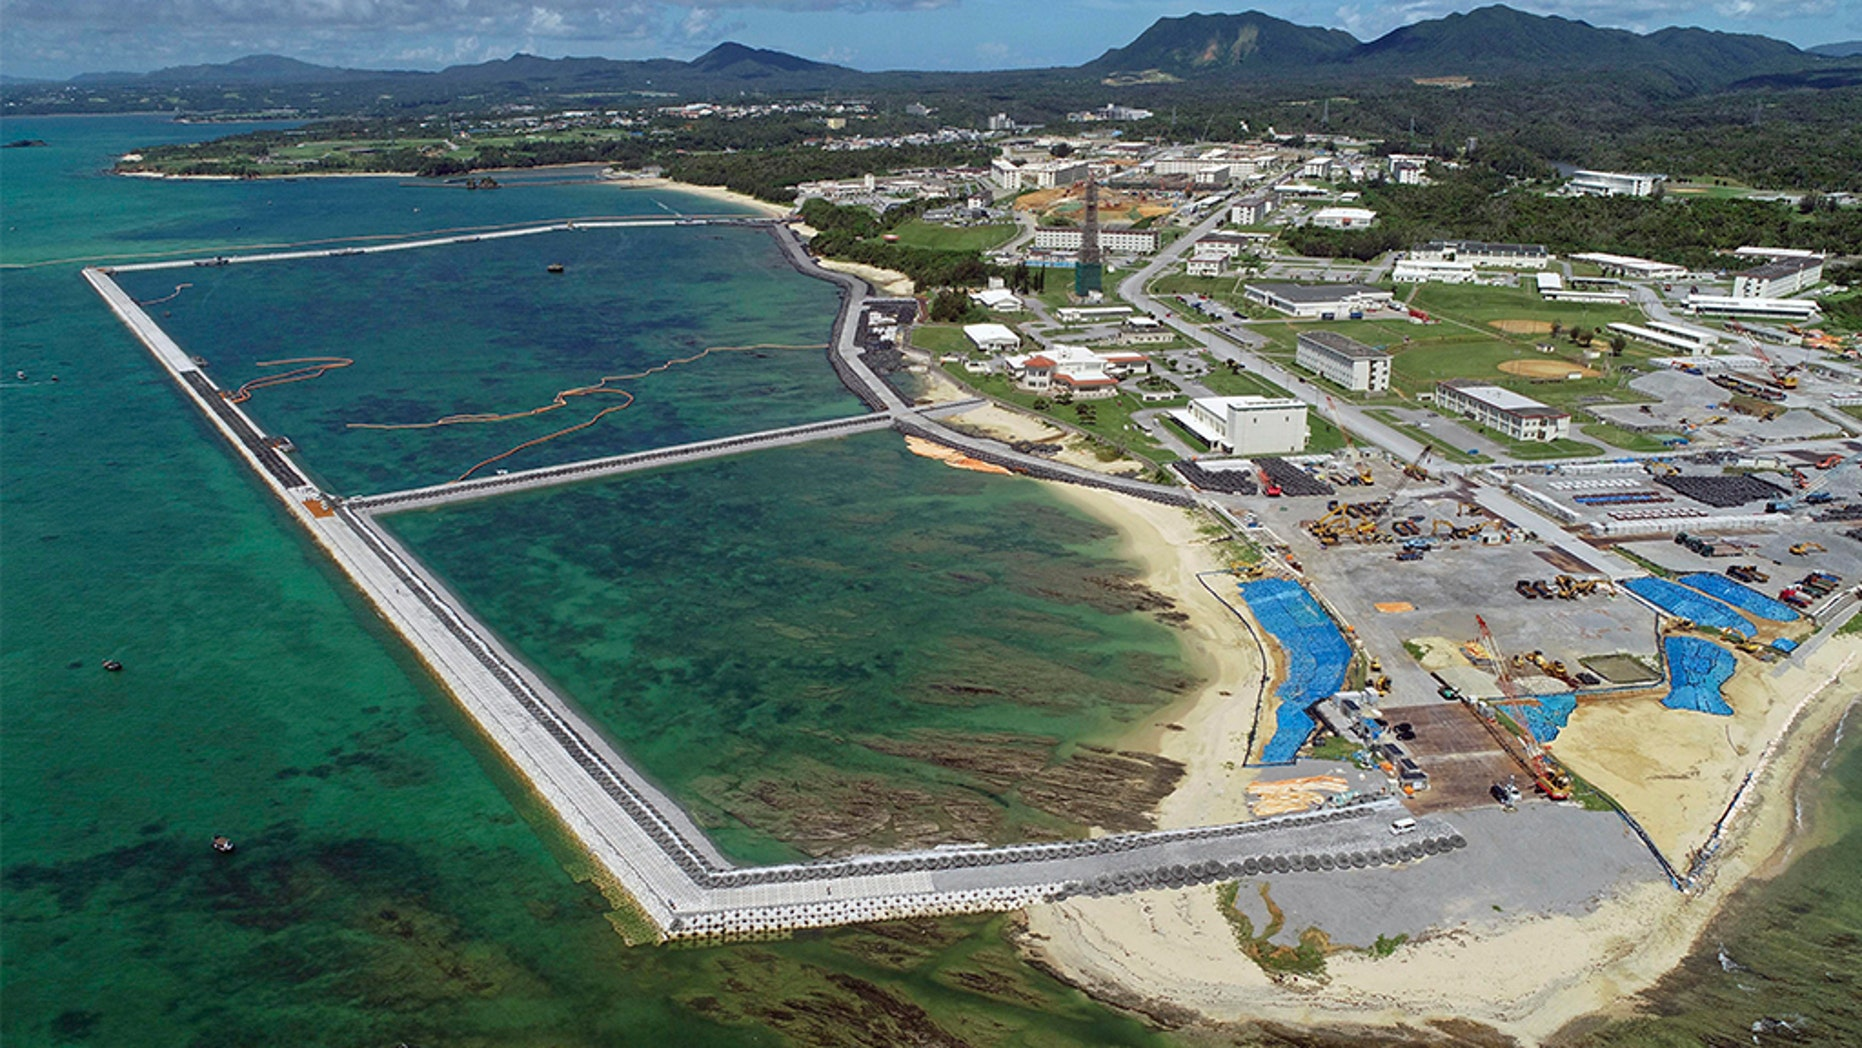 FILE - This Aug. 2018, file aerial photo shows preliminary construction work off Henoko, in Nago city, Okinawa prefecture, Japan, where the Japanese government plans to relocate a U.S. air base from one area of Okinawa's main island to another. Denny Tamaki, the newly elected governor of the southern Japanese island of Okinawa, was chosen in a Sept. 30 election, running on a campaign that rejected the U.S. base being built on coastal Henoko. He defeated, by a comfortable margin, the candidate backed by the ruling party, eager to go ahead with Henoko, whose construction has been on hold. (Koji Harada/Kyodo News via AP, File)